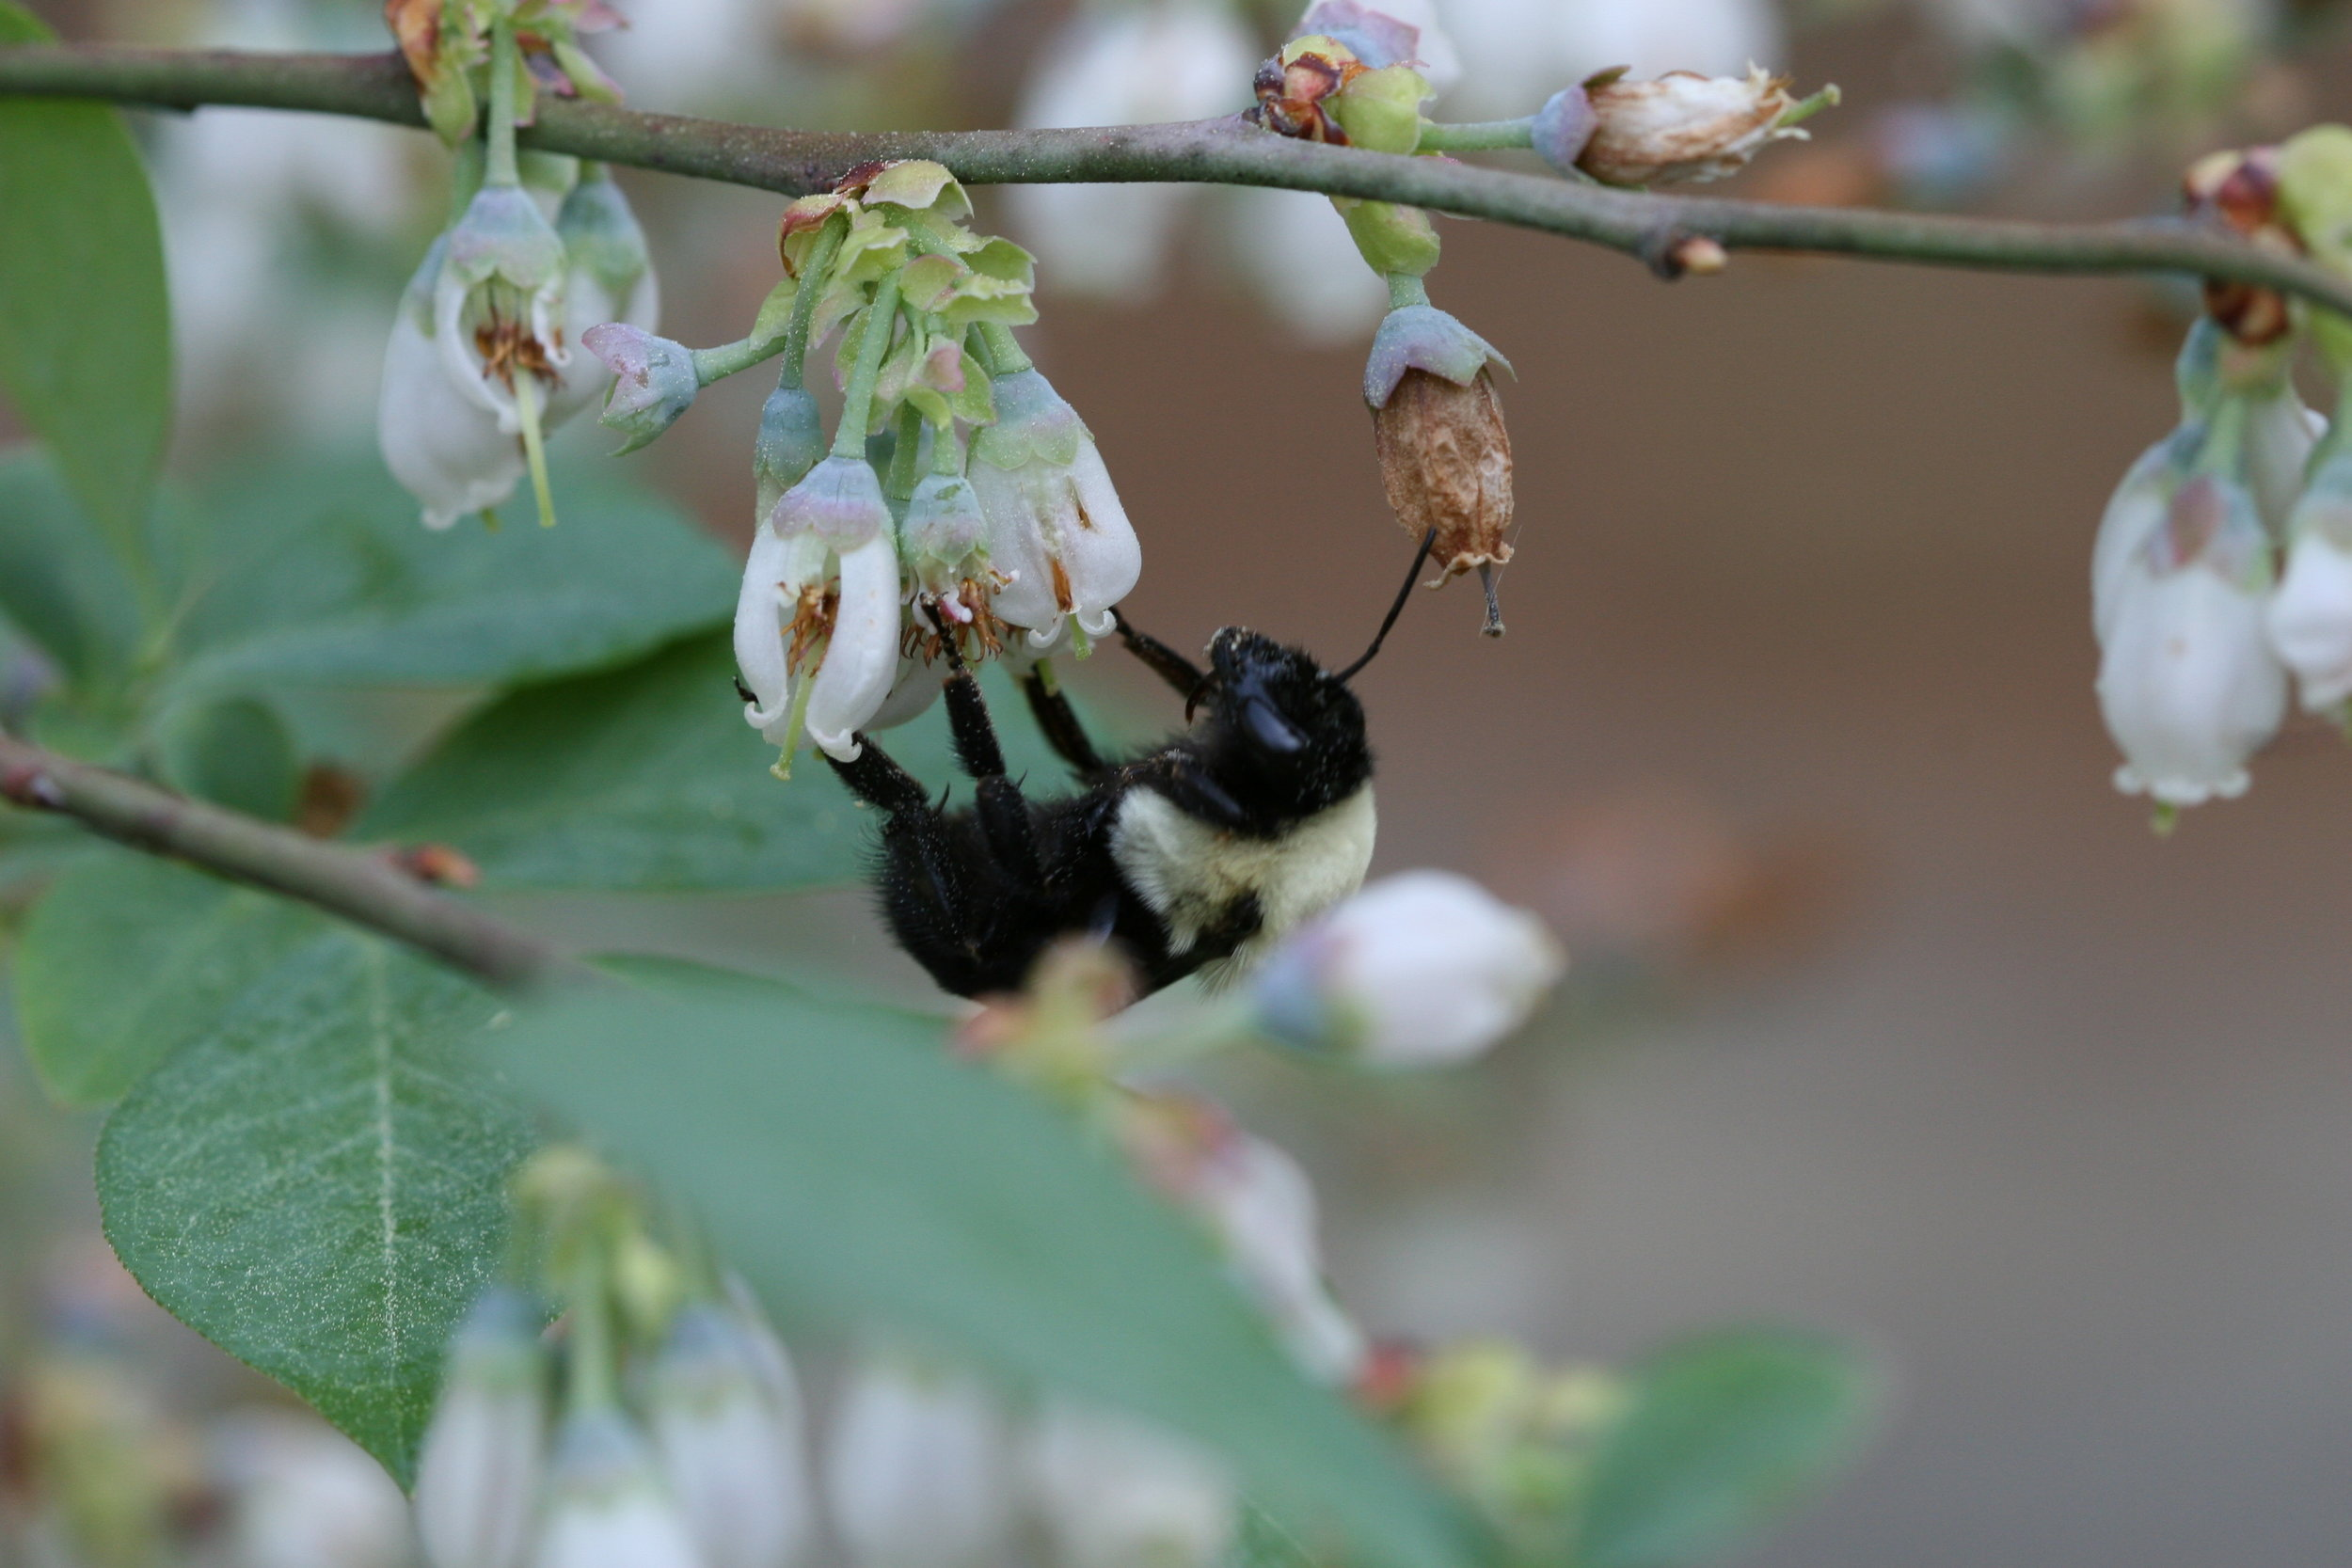 Blueberries are pollinated by native bees, bumble bees, and honey bees (to name just a few).